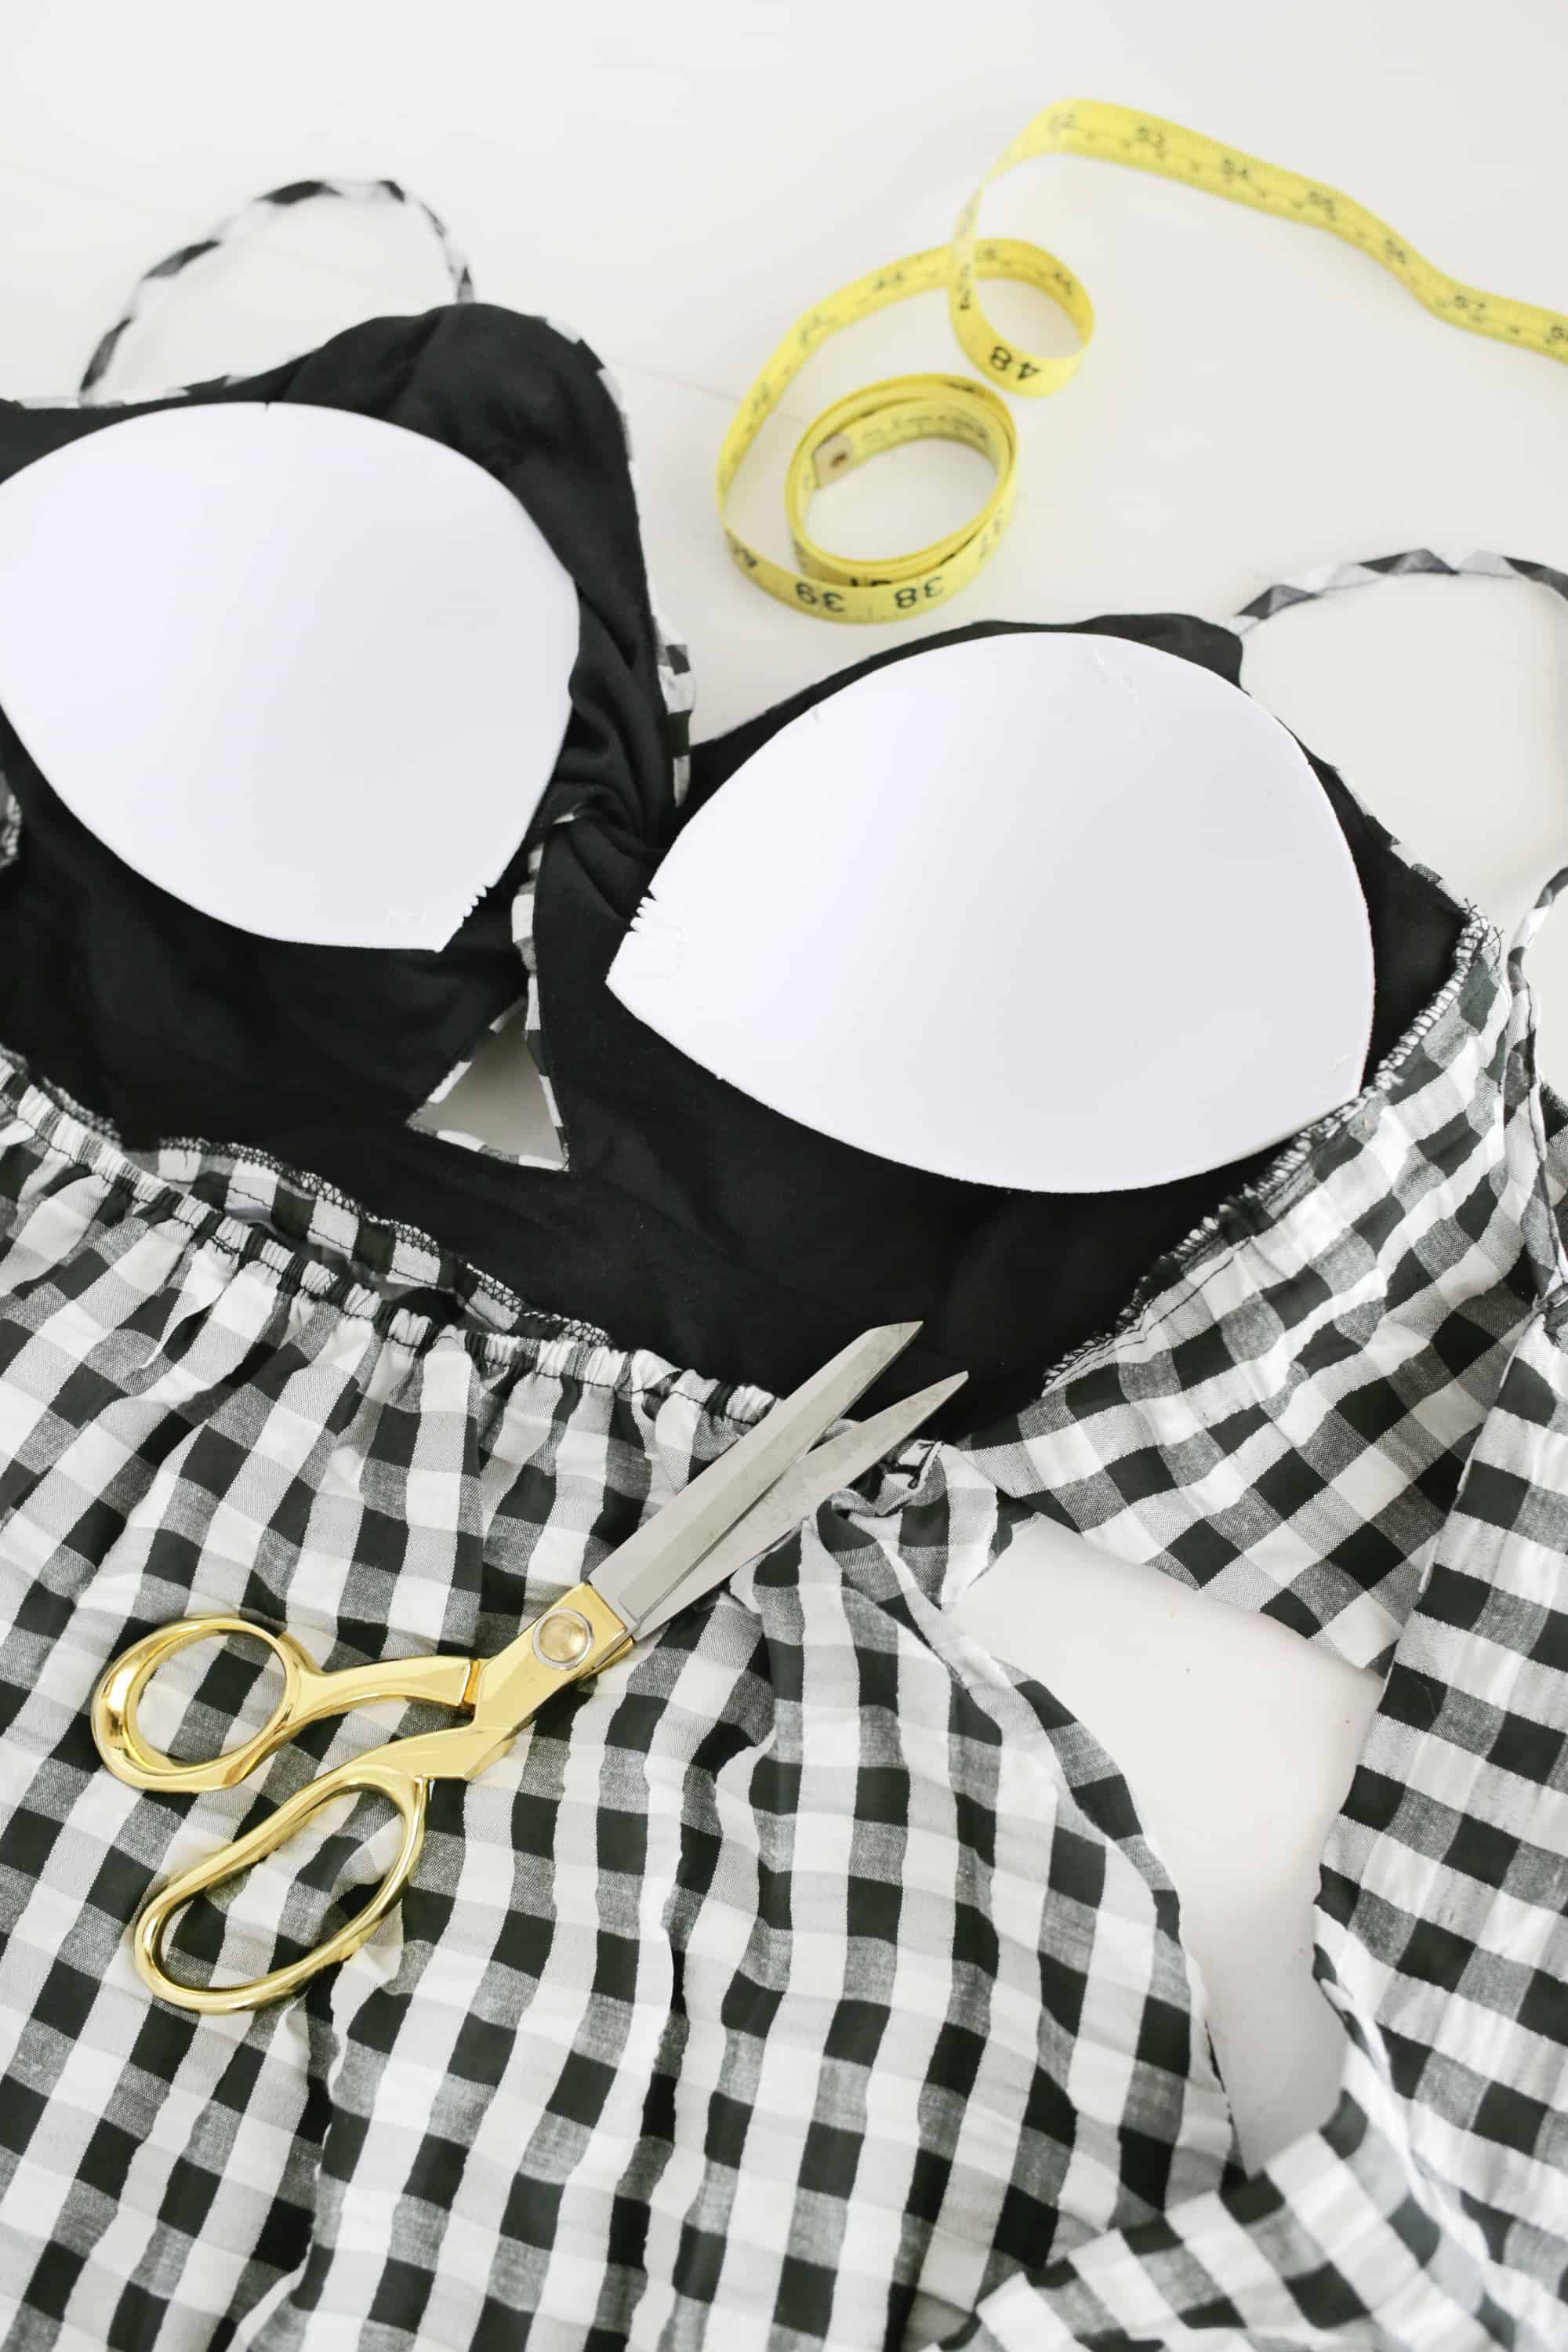 How-To-Add-A-Built-In-Bra-To-Clothing-click-through-for-tutorial.-